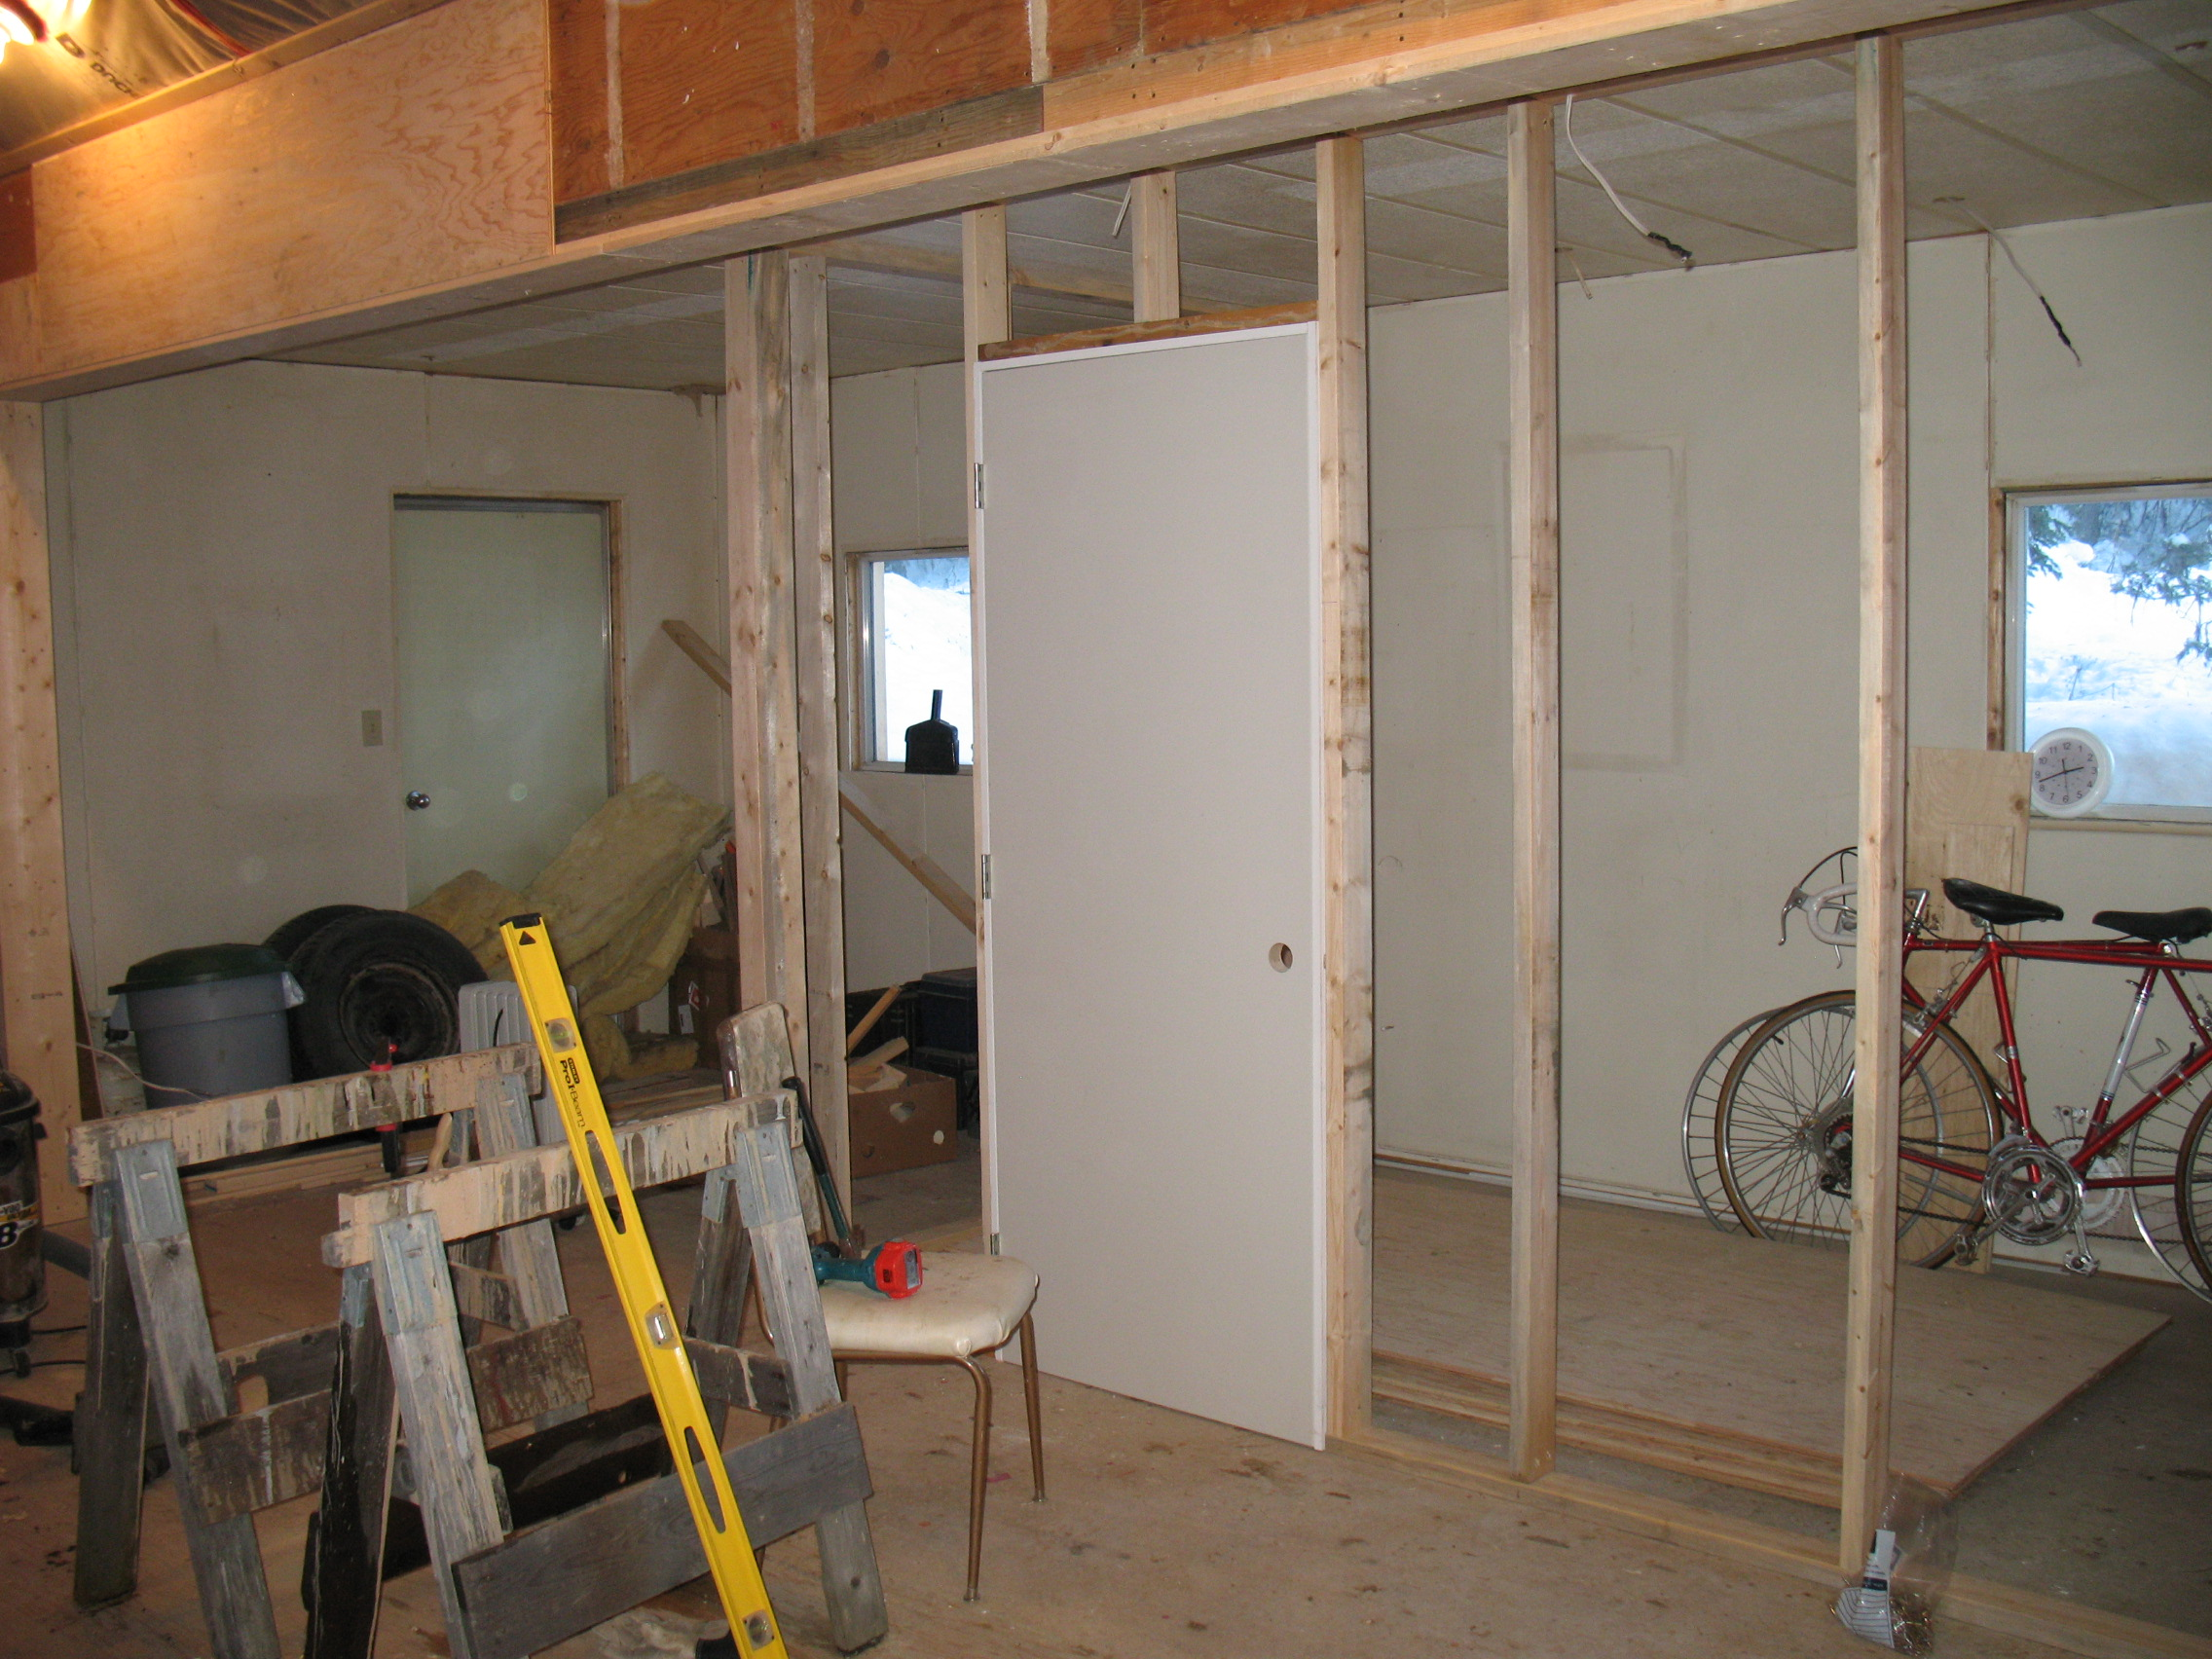 The walls and door of the Dough Room are being roughed in.